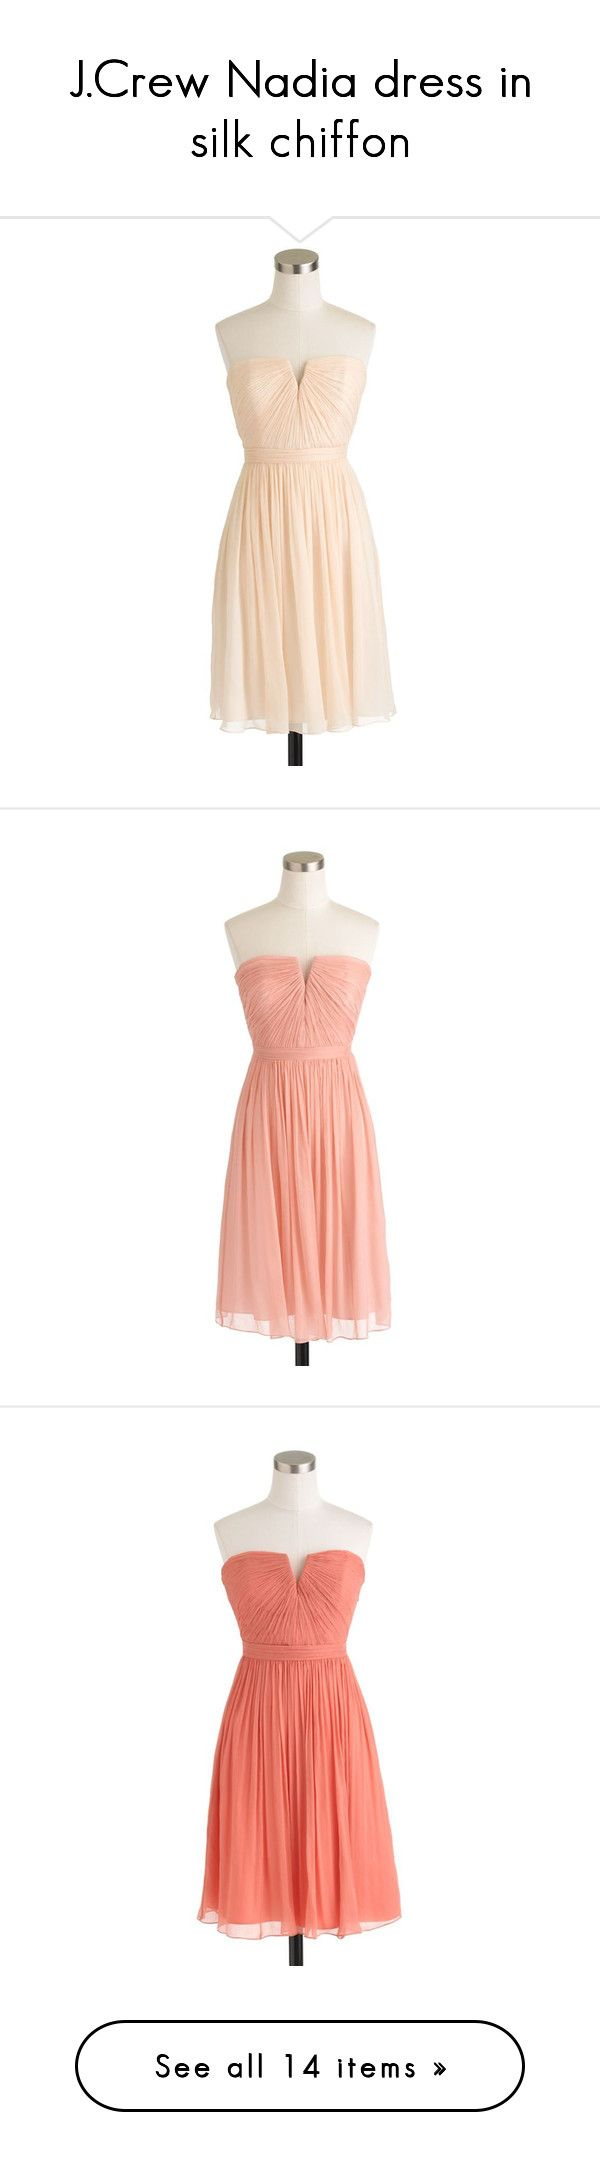 """J.Crew Nadia dress in silk chiffon"" by grace-rosanna-lee ❤ liked on Polyvore featuring dresses, vestidos, short dress, petite, below the knee dresses, petite dresses, short dresses, short beach dresses, ruched dress e bridesmaid dress"